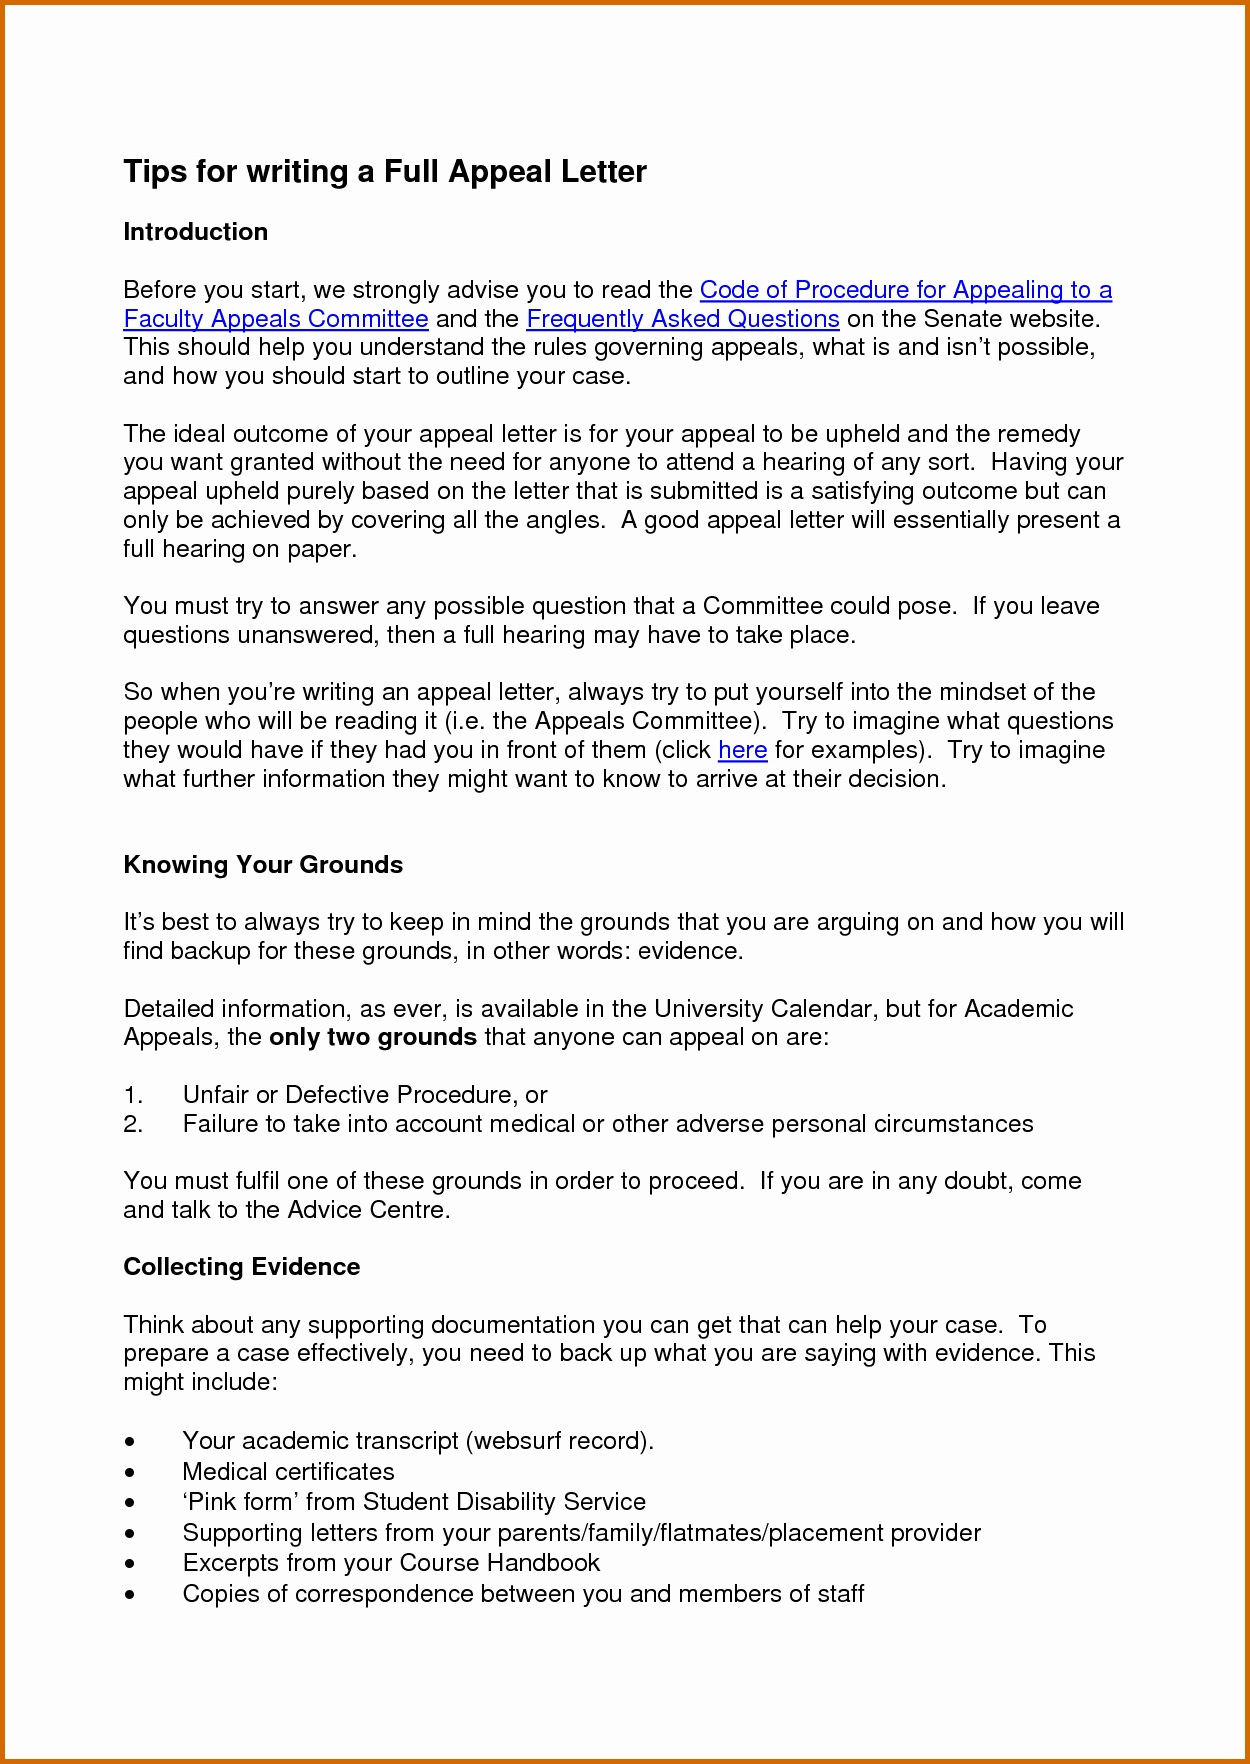 Letter to Senator Template - Best Resume Building Sites Awesome Sample Terms Use Statement for